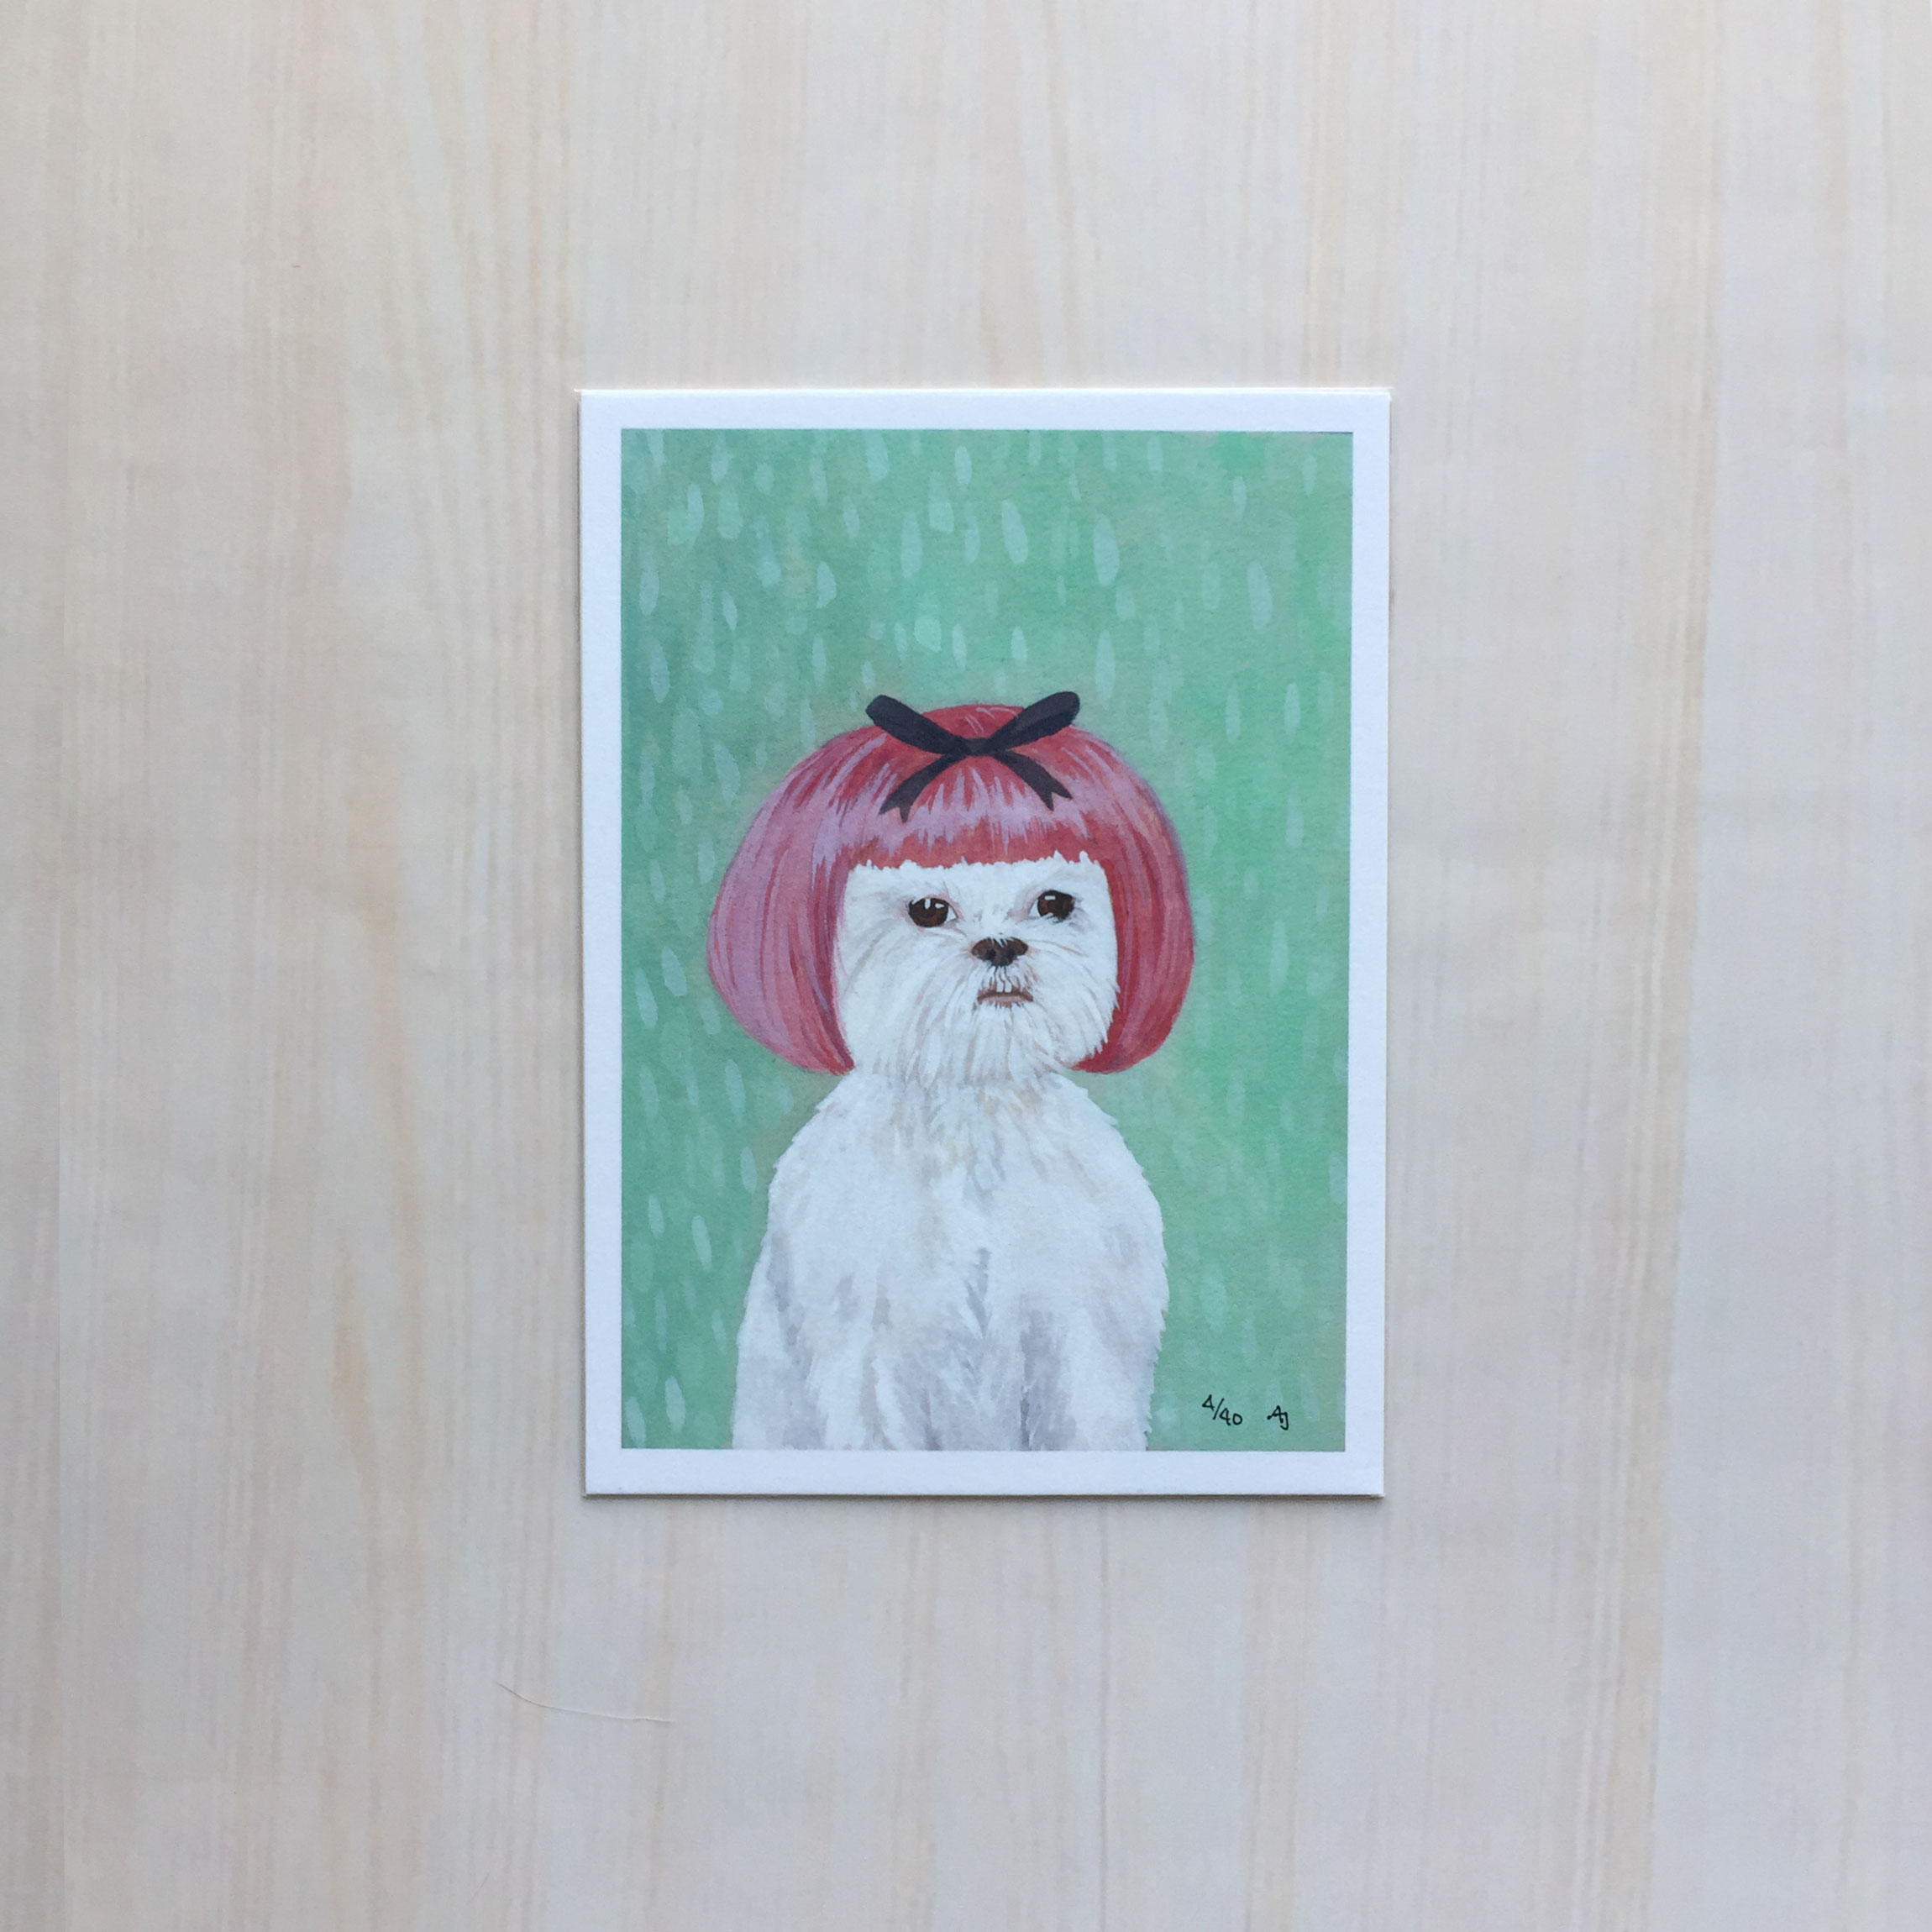 "I Shih Tzu Not   Size: 5.5""x7.5"" Printing: digital Paper: velvet Original Medium: gouache Editions: limited to 40"